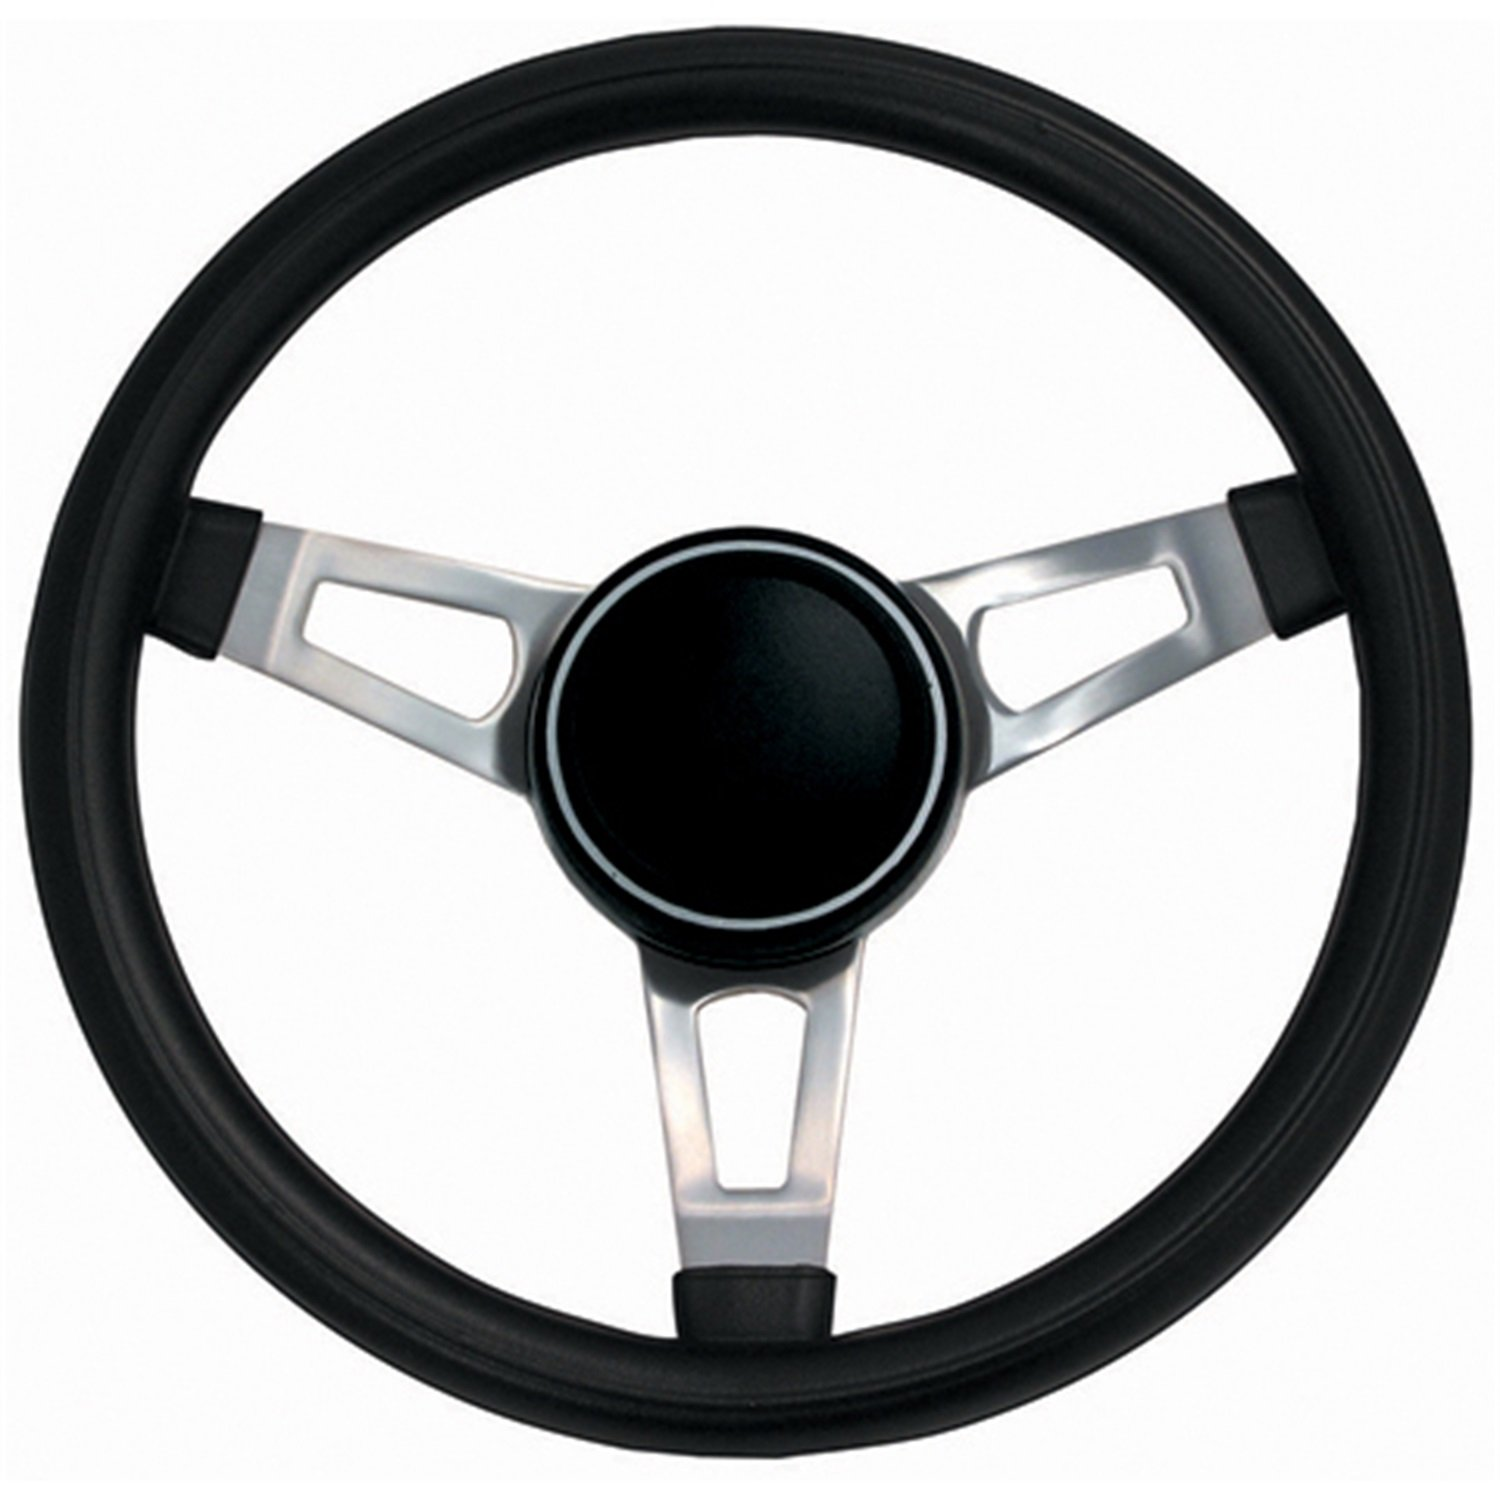 Grant Products 846 Classic Nostalgia Wheel